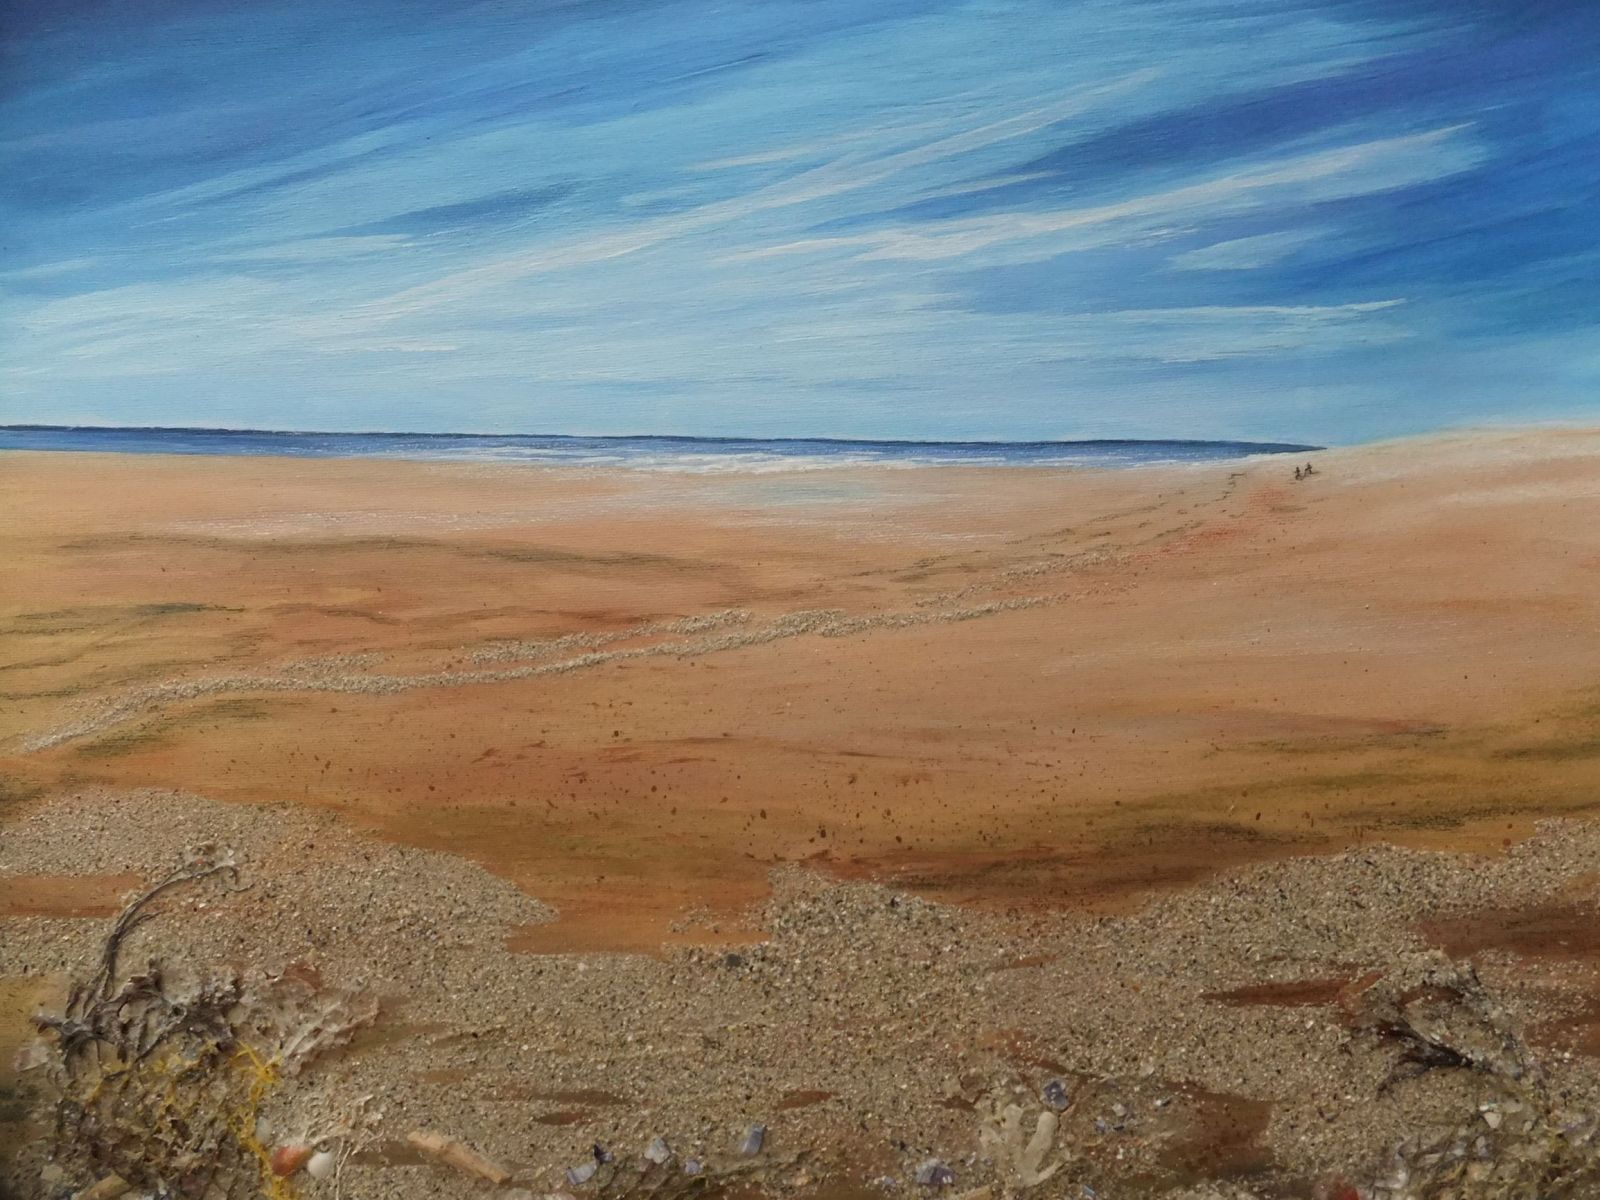 Beachcombing-Acrylic-and-materials-from-the-beach-in-the-painting